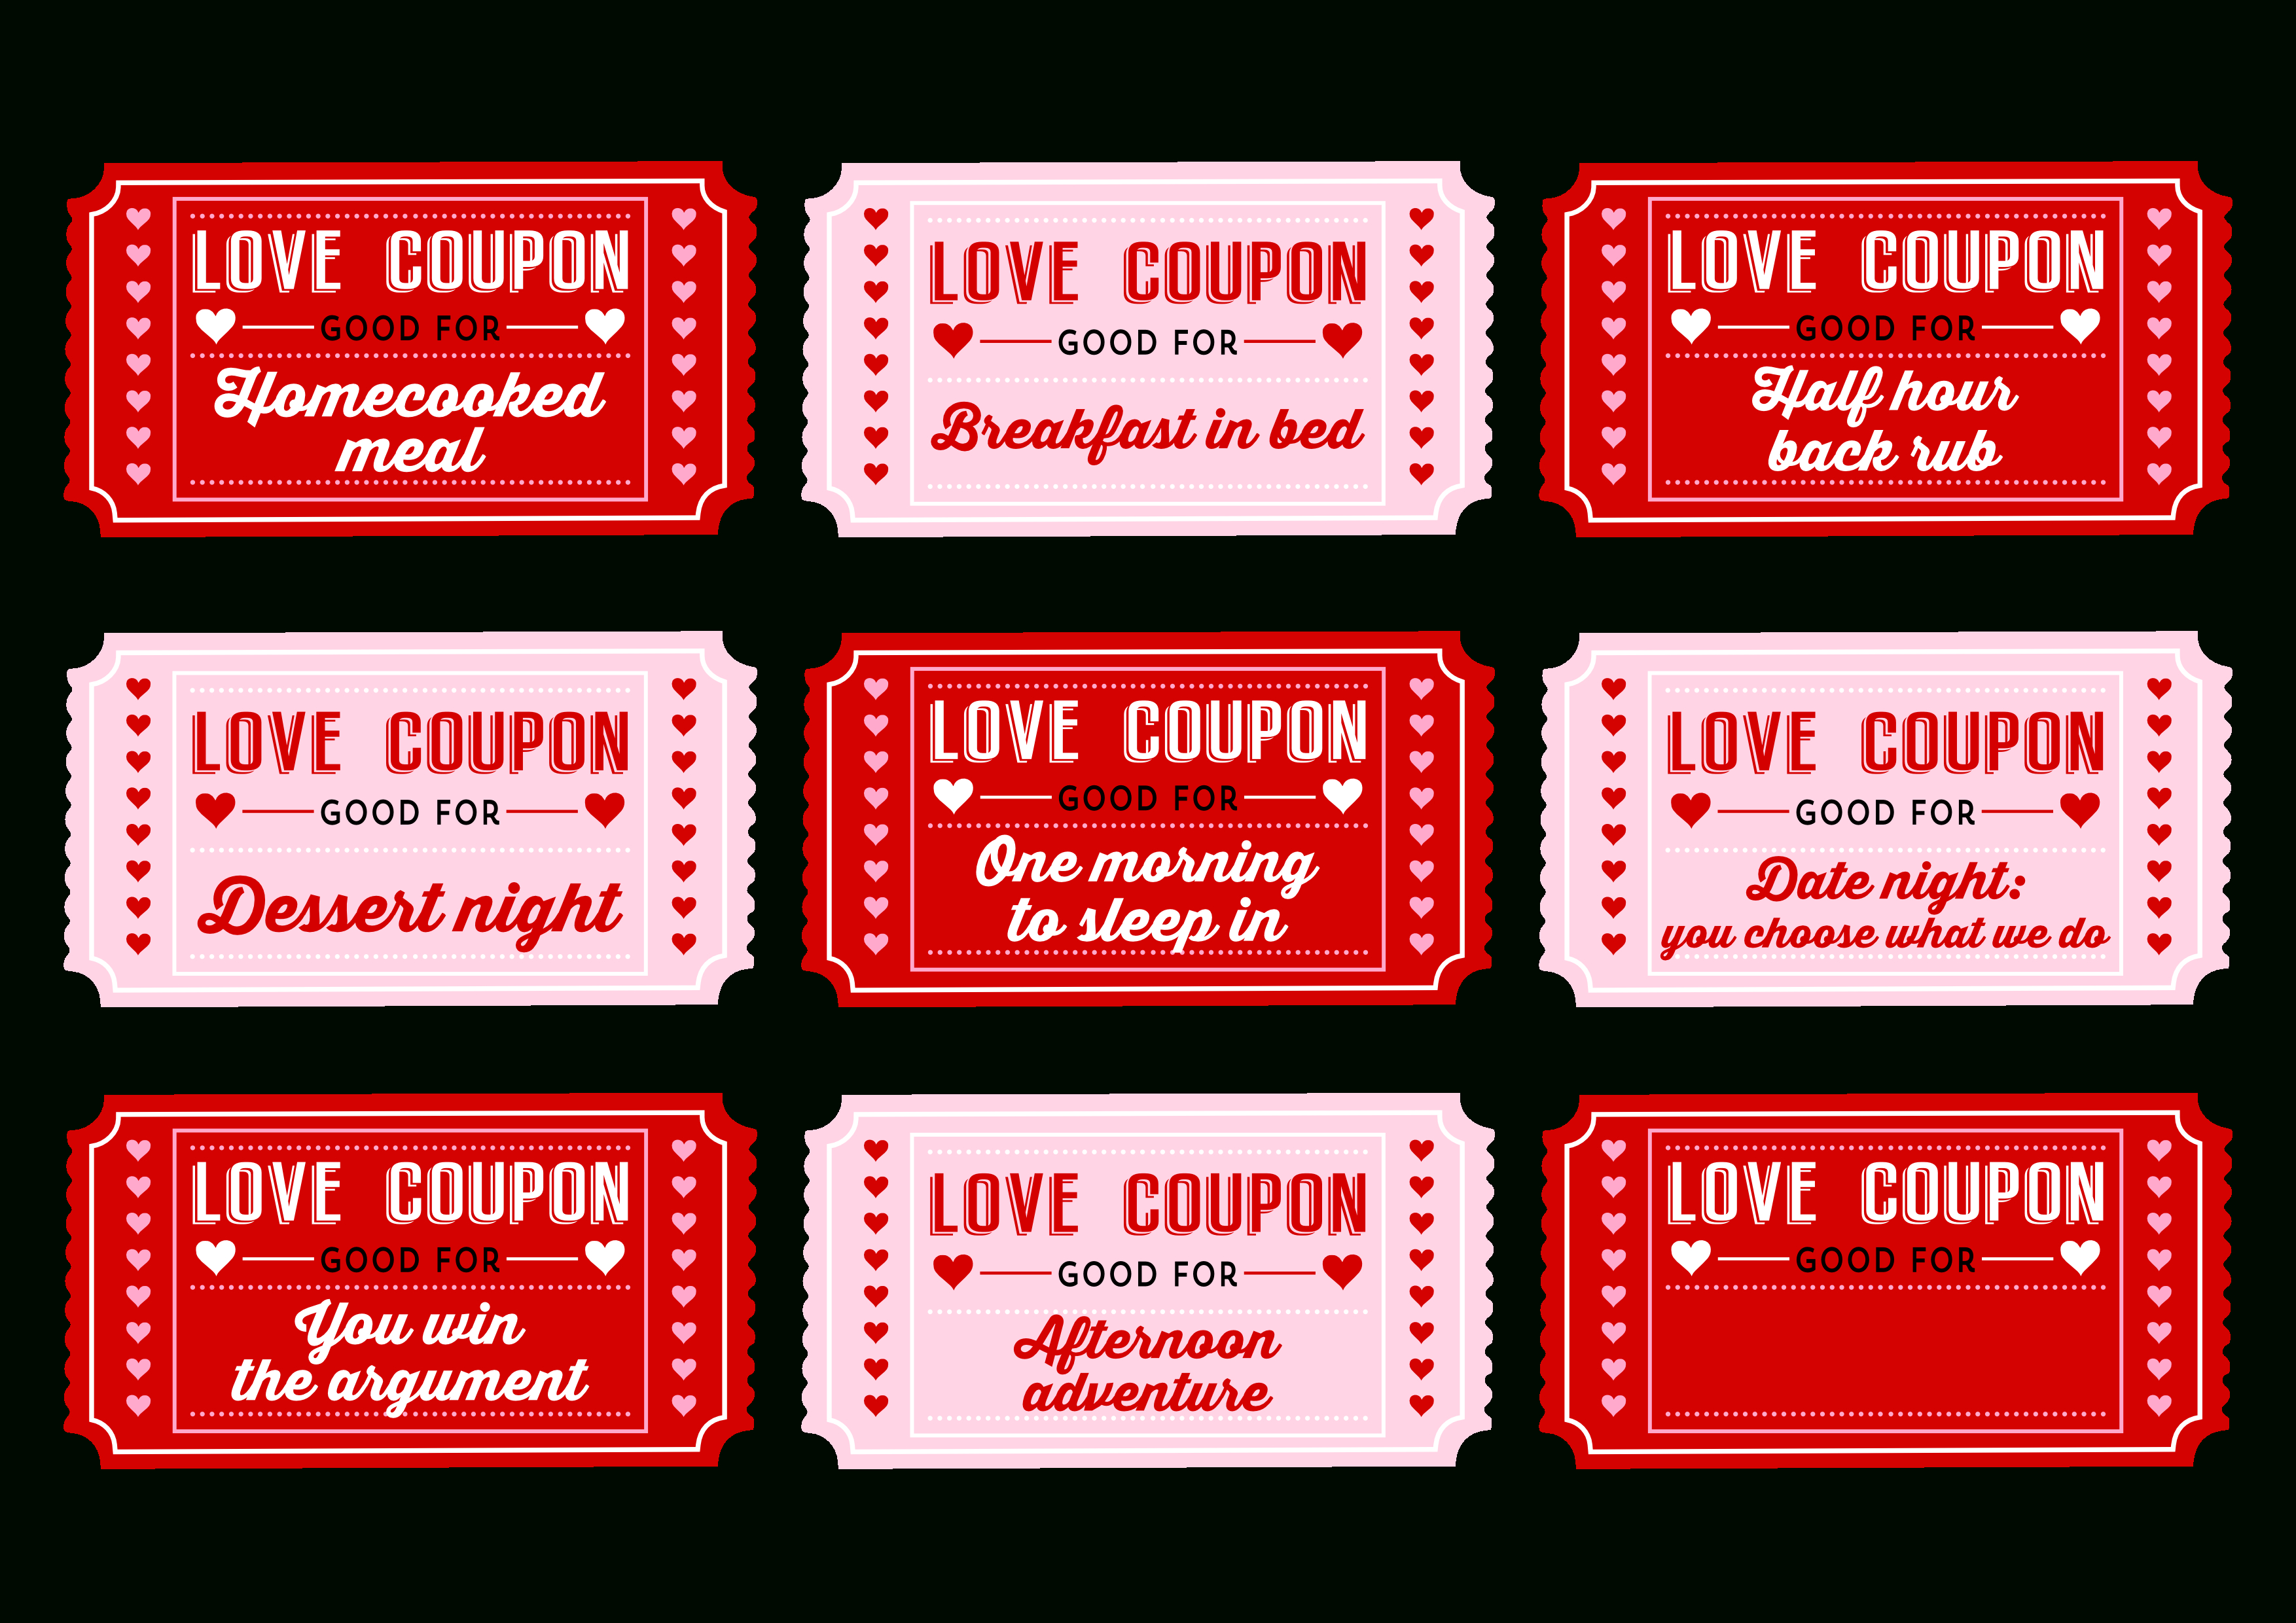 Free Printable Love Coupons For Couples On Valentine's Day! | Catch - Love Coupons For Him Printable Free